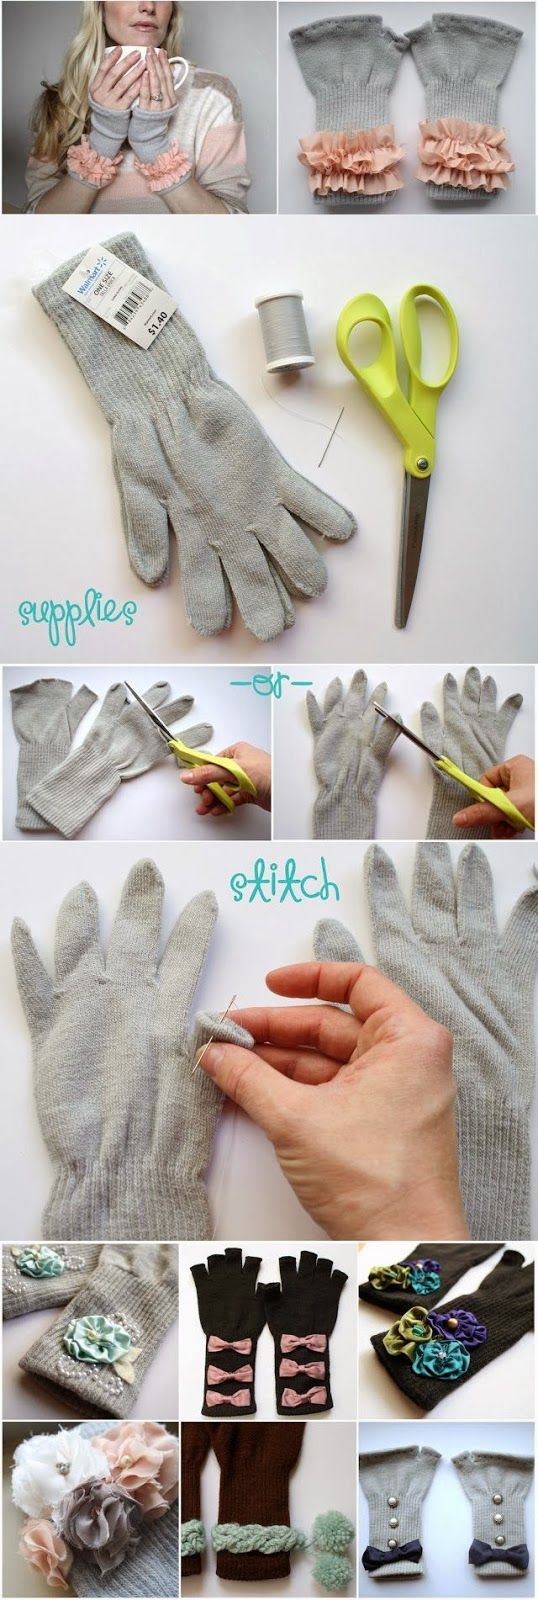 Make finger-less gloves from old pairs - perfect for chilly days in the office #DIY #recycle #craft